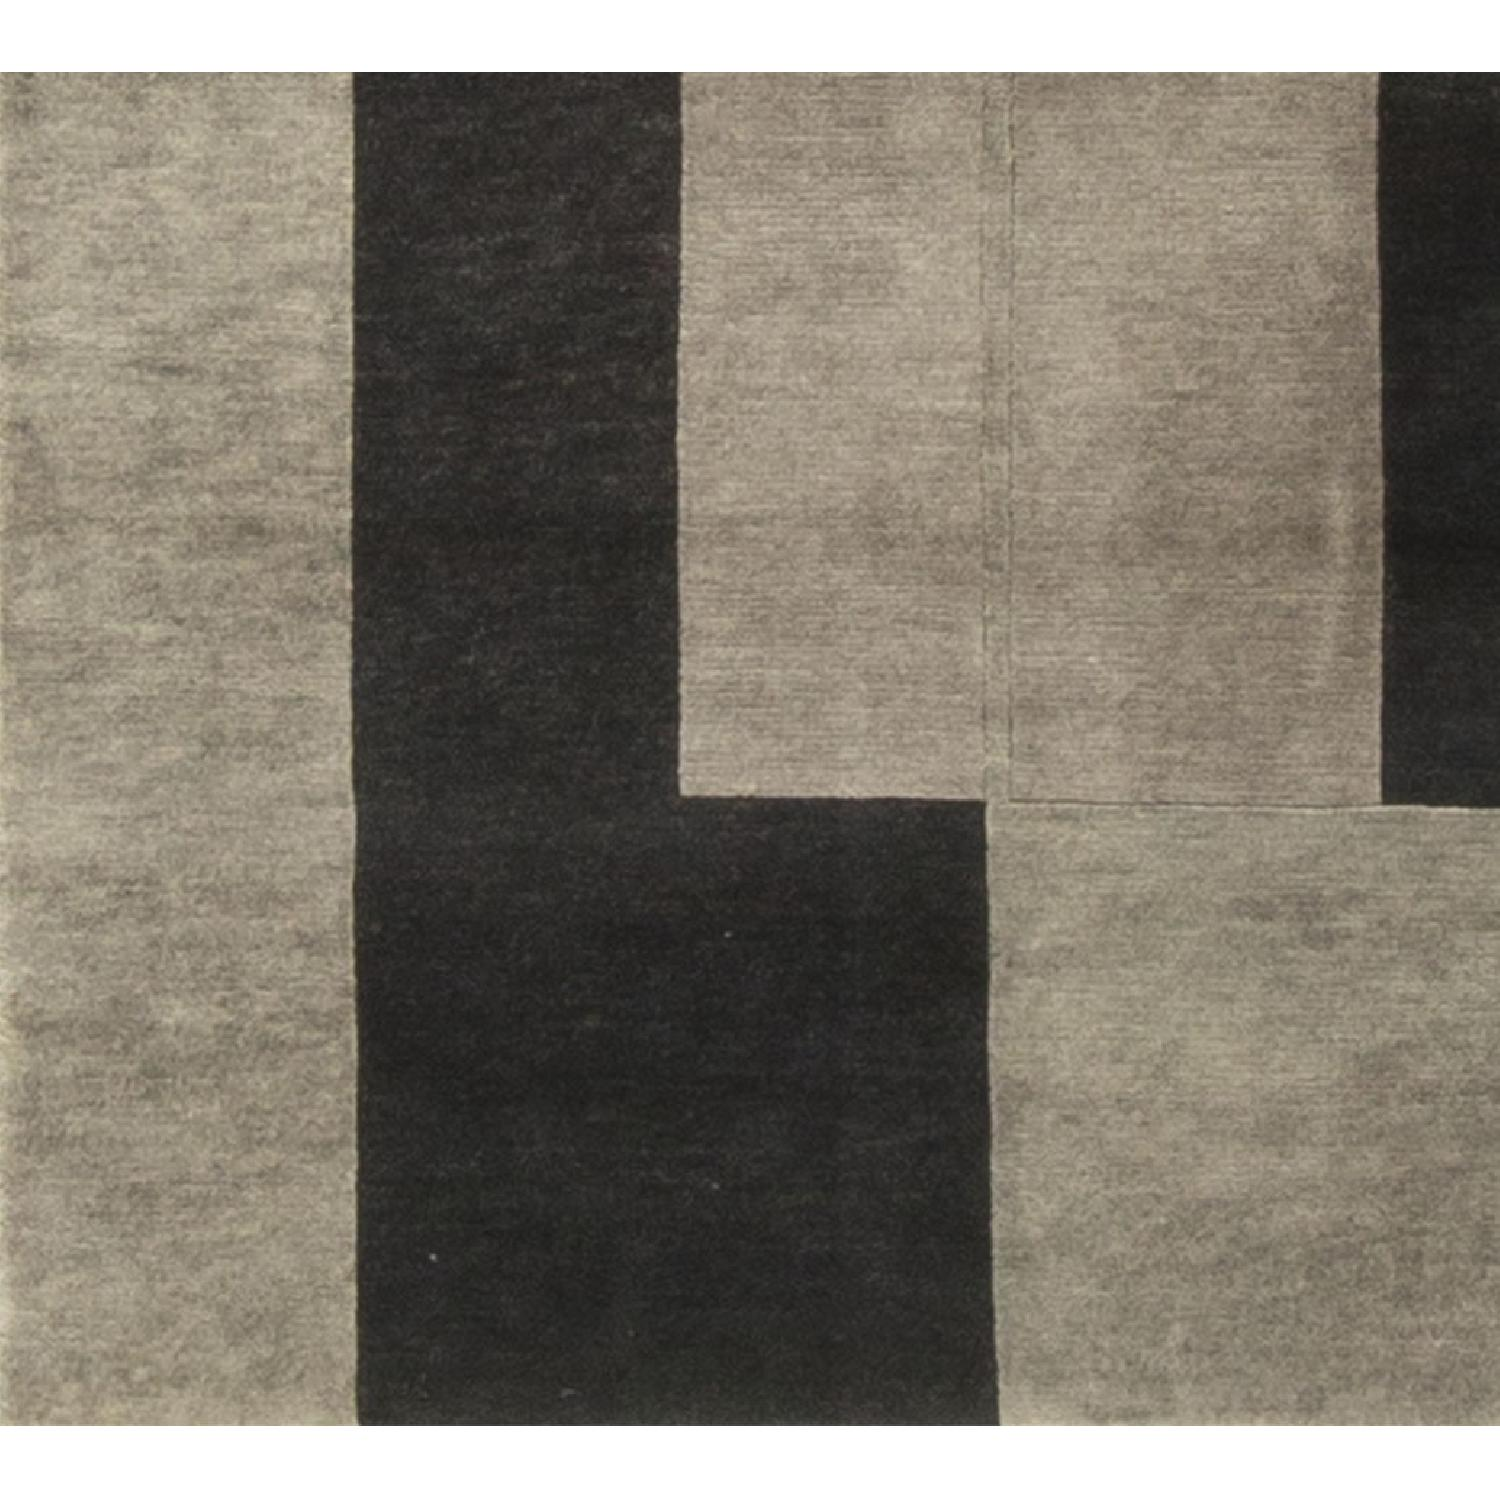 Modern Contemporary Hand Knotted Wool Rug in Black/Grey - image-3